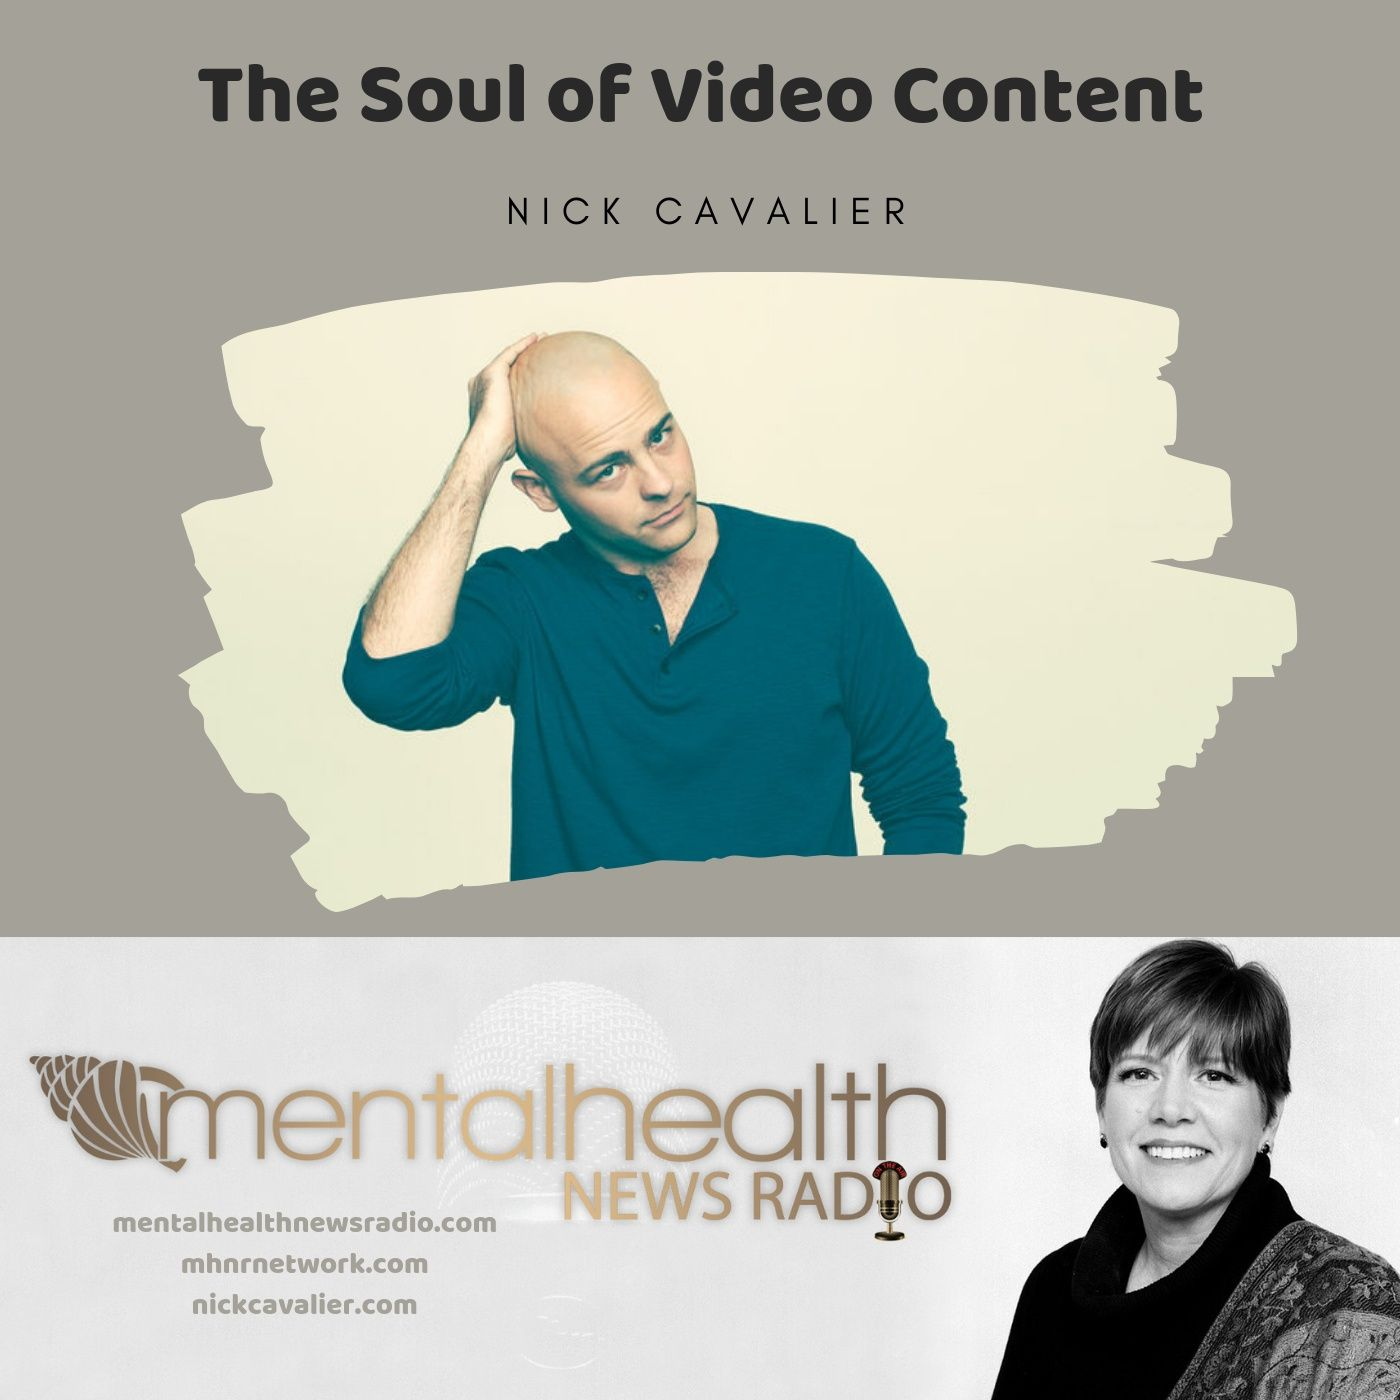 Mental Health News Radio - The Soul of Video Content with Director Nick Cavalier